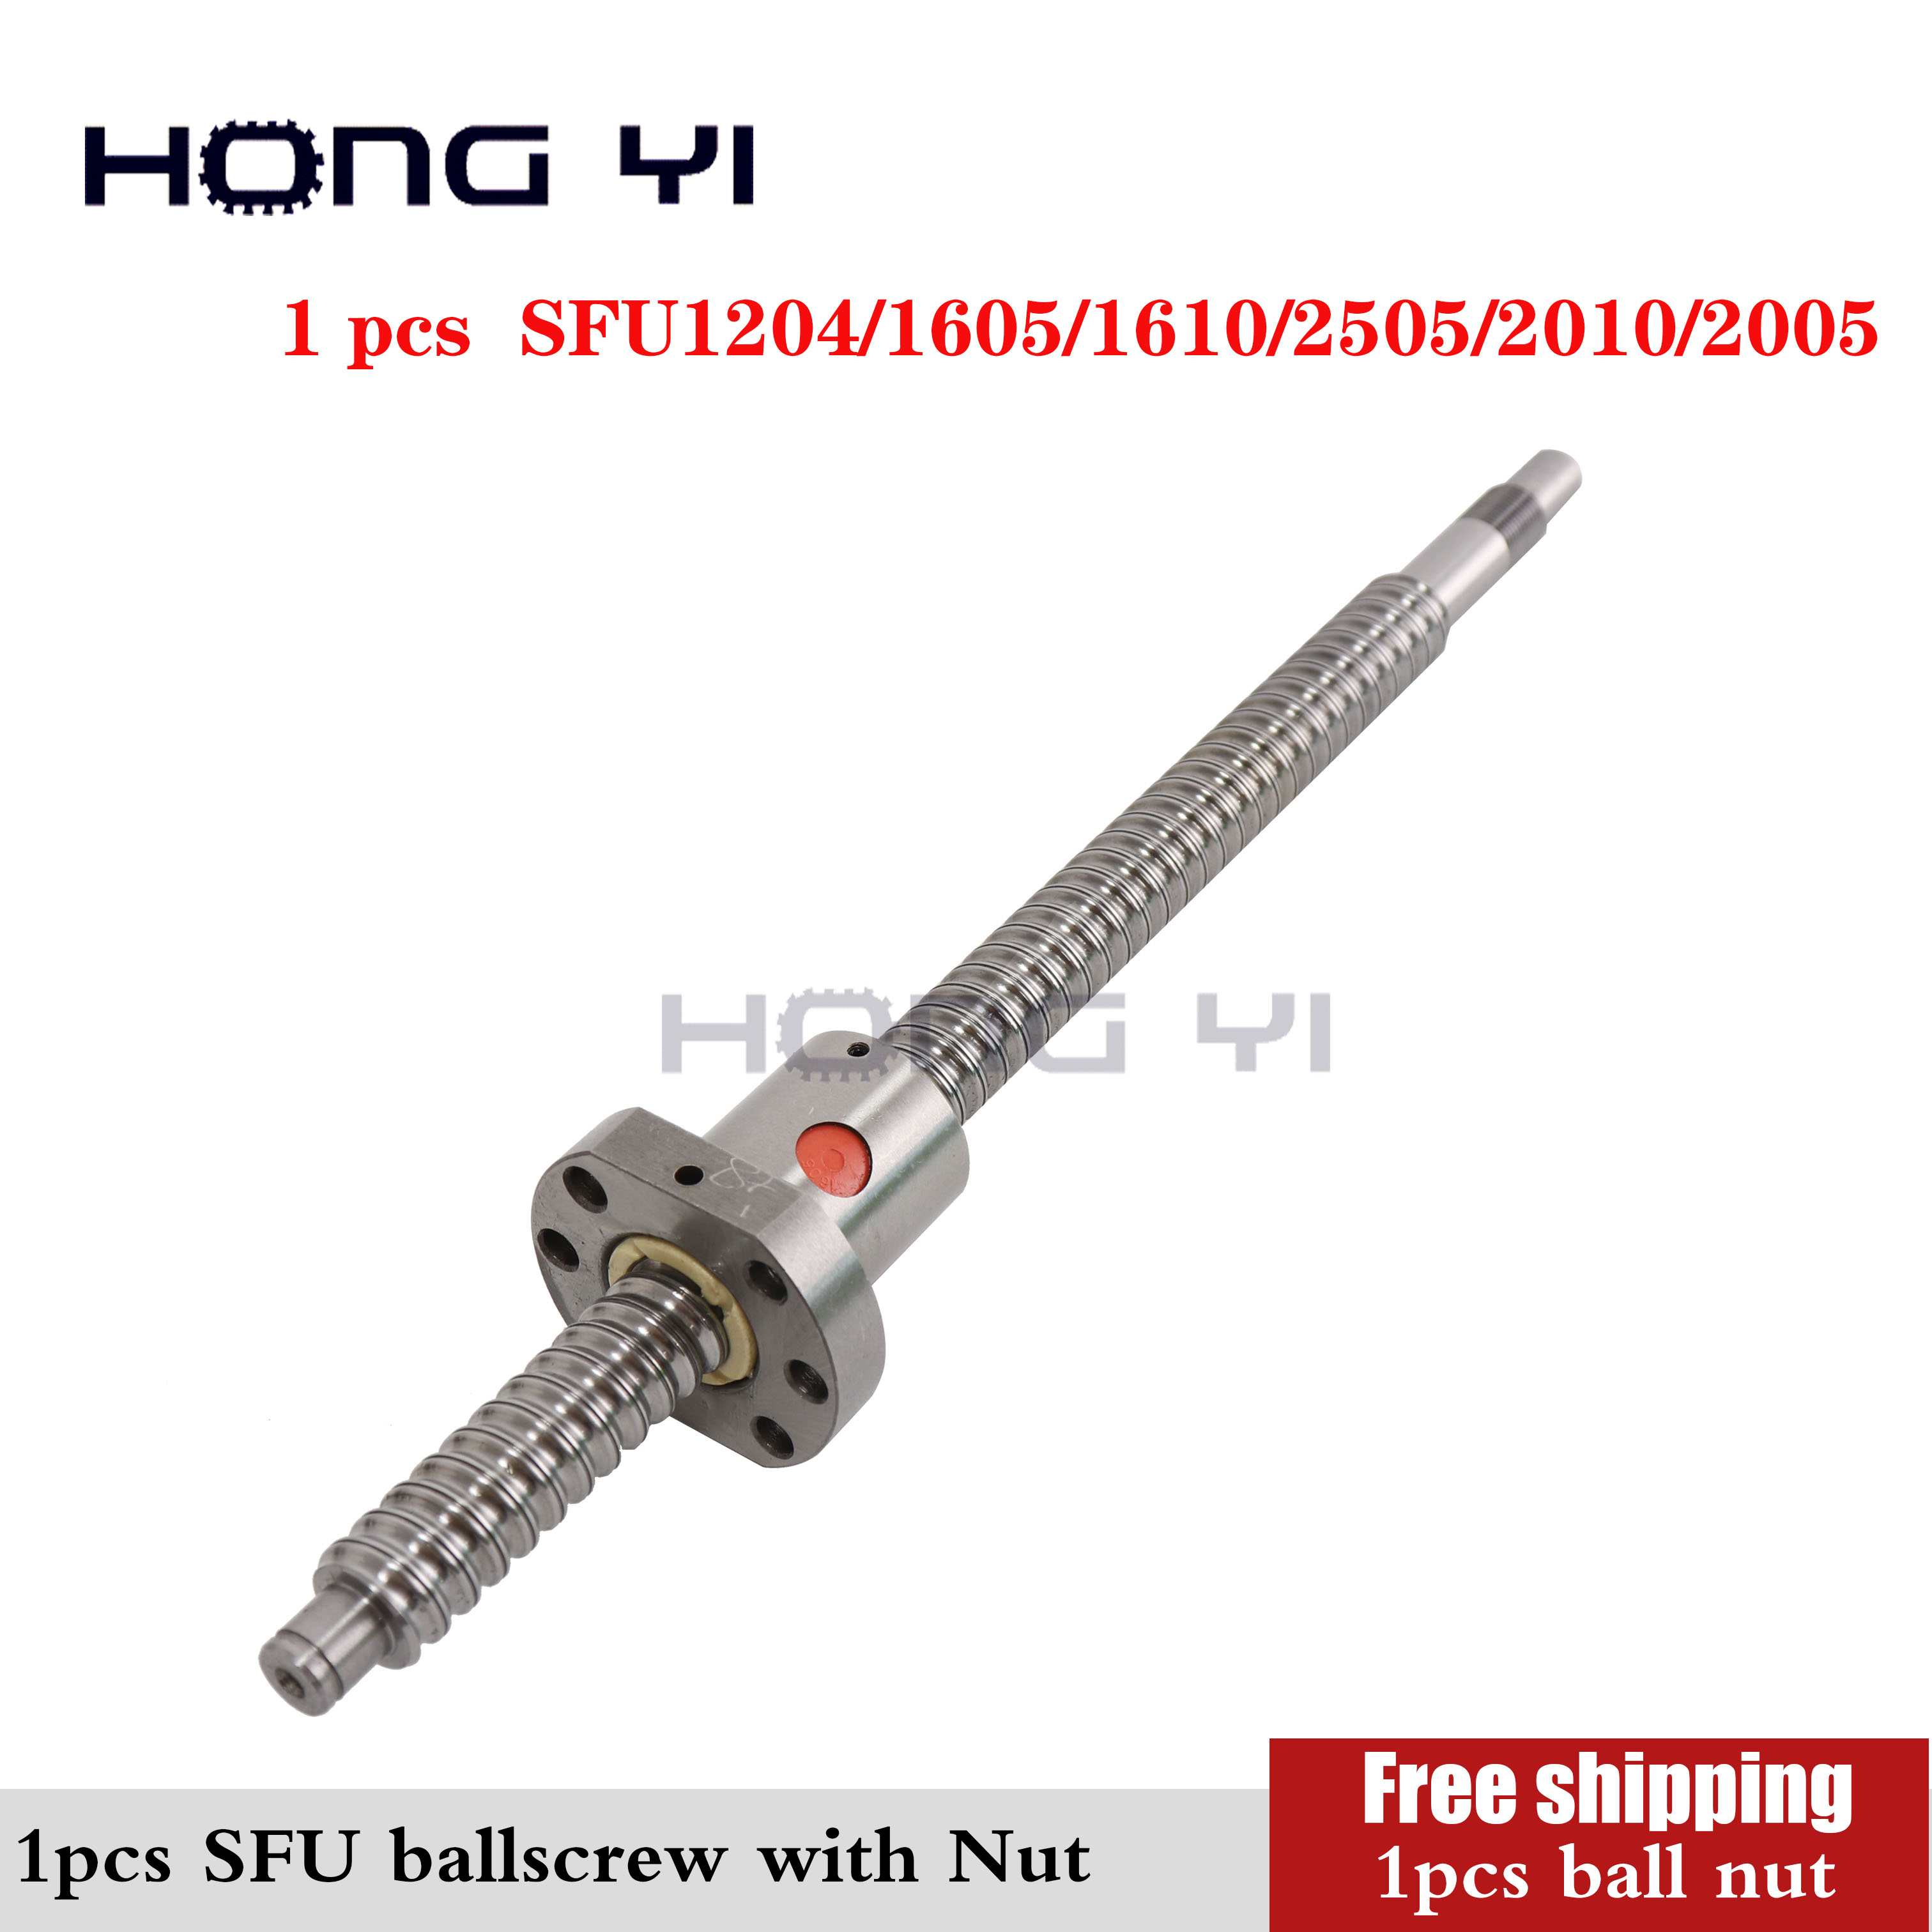 SFU1204 /<font><b>1605</b></font>/1610/2505/2010/2005+ ball screw <font><b>nut</b></font> + End processing can Choose length for CNC parts Rolled <font><b>Ballscrew</b></font> image